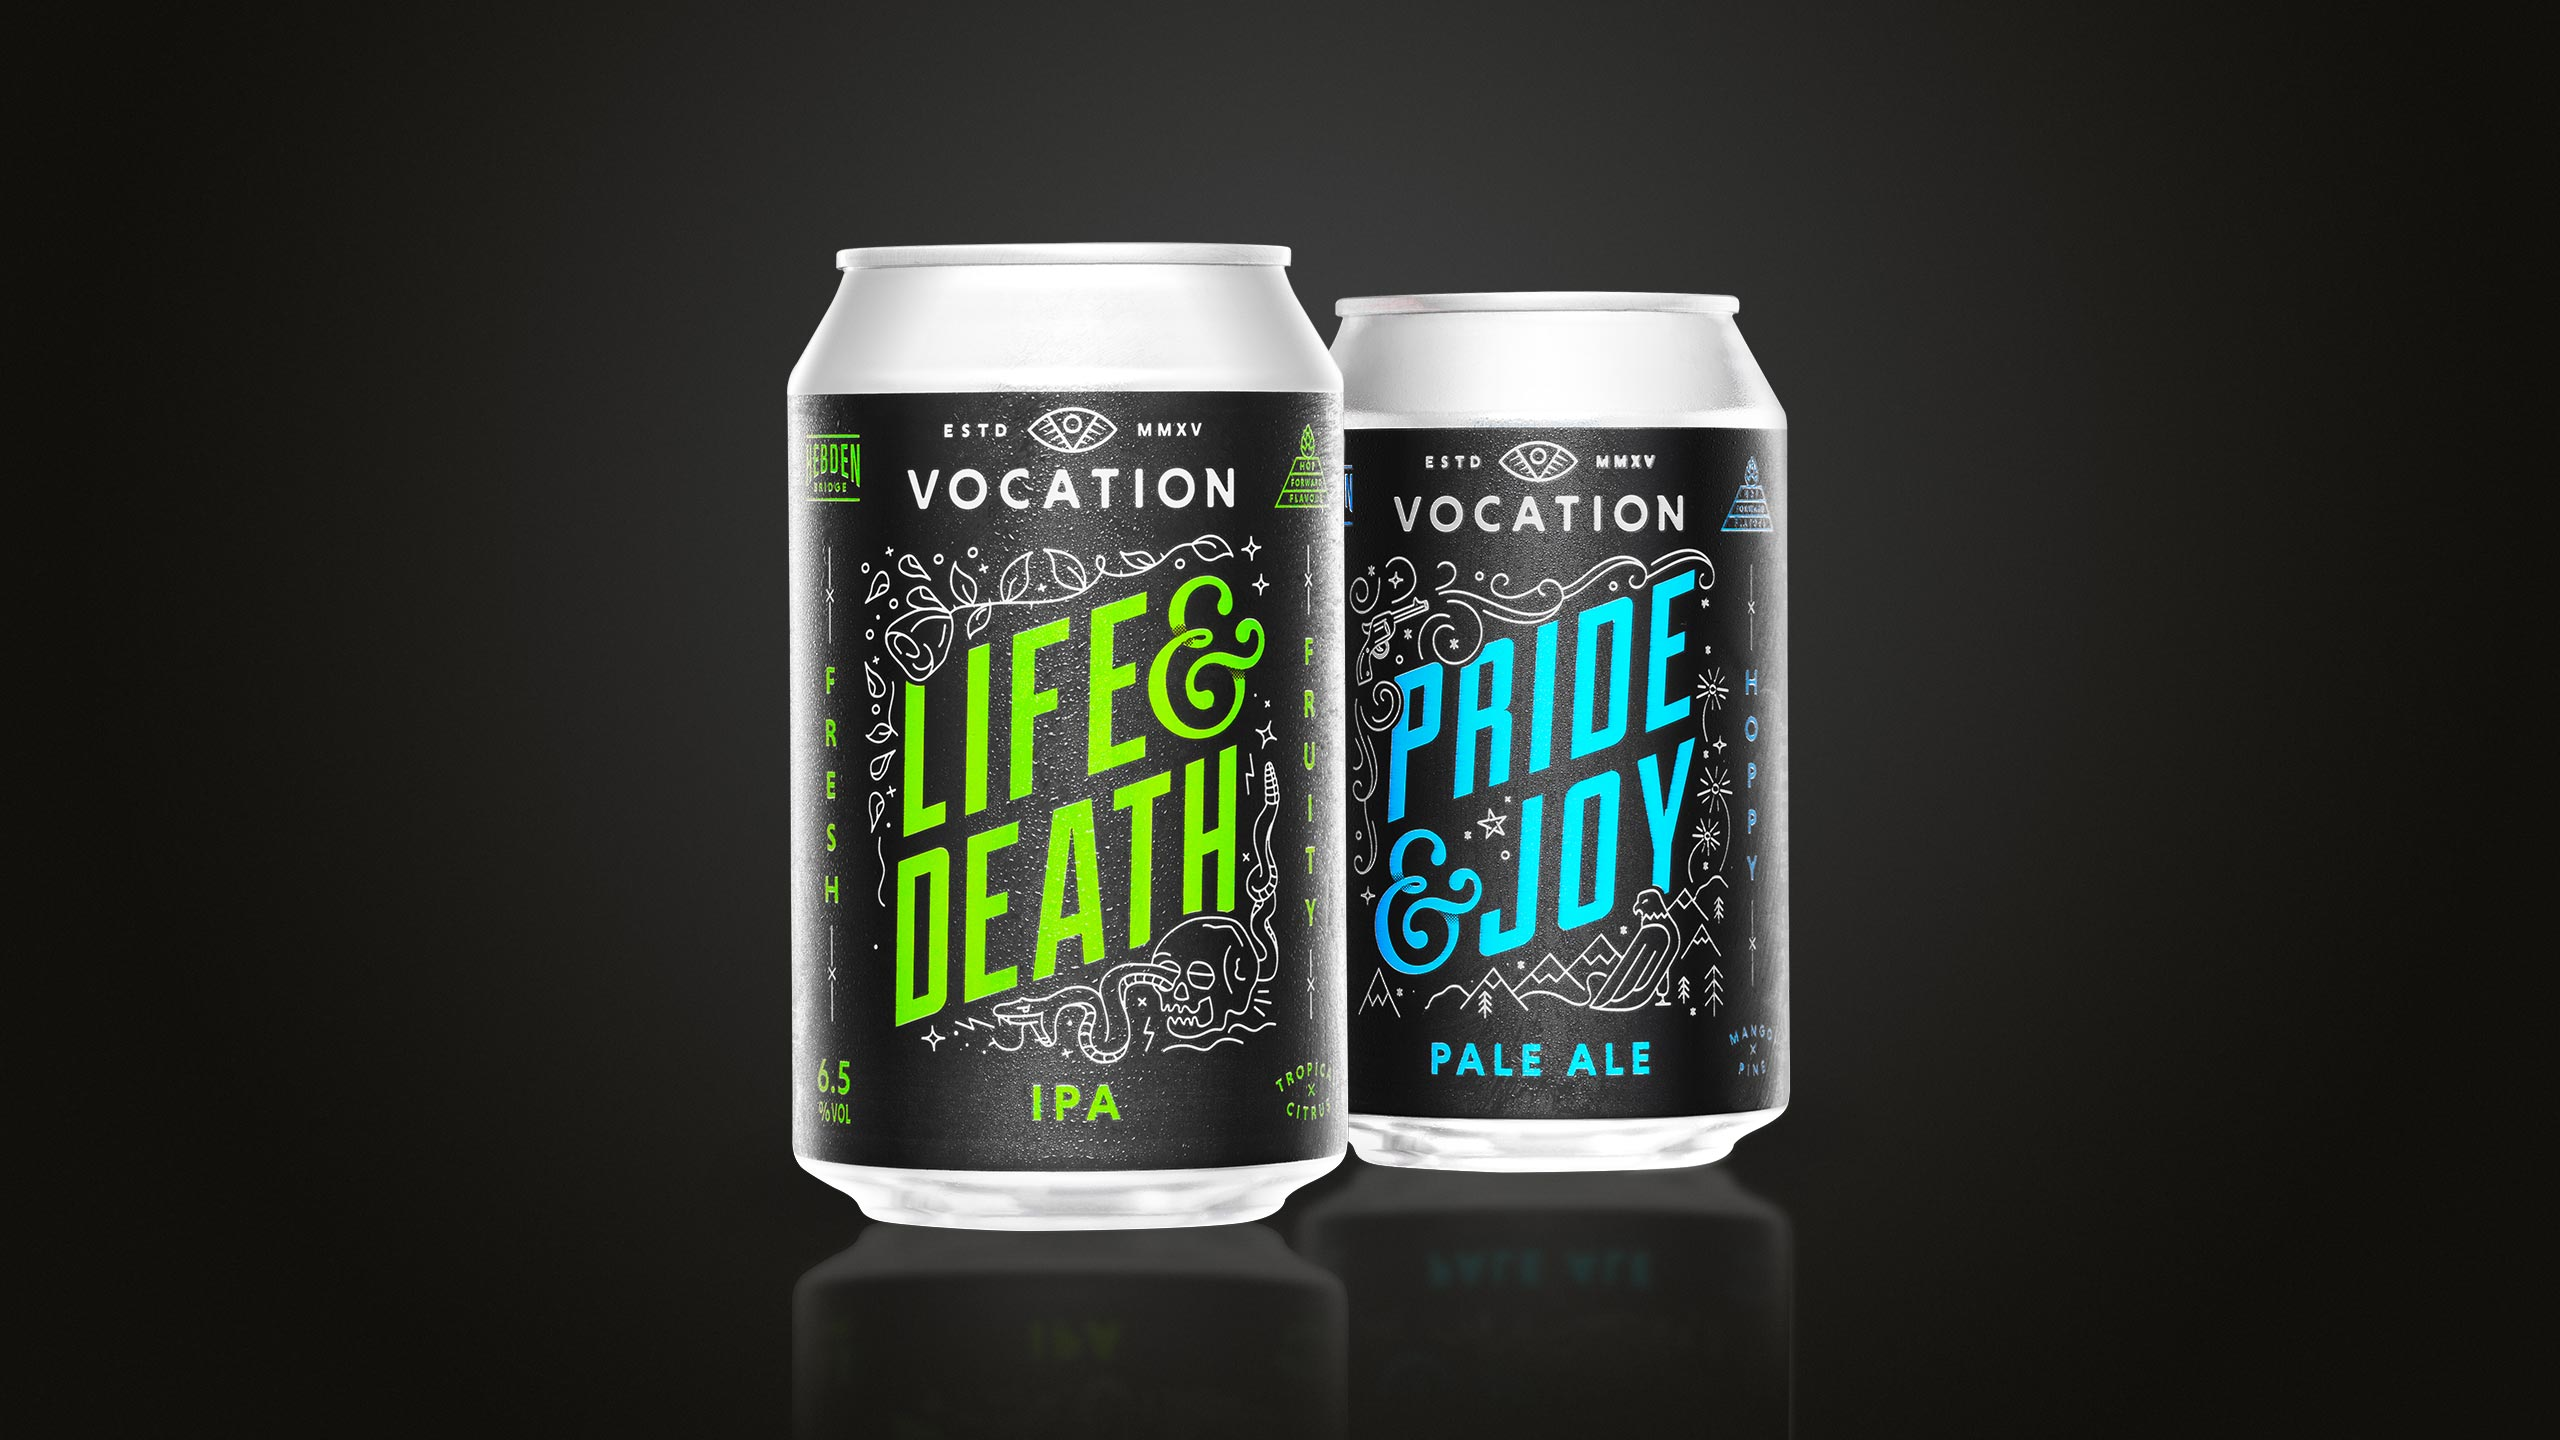 Vocation Brewery Life and Death Pride and Joy Product Photography by wipdesigns.com